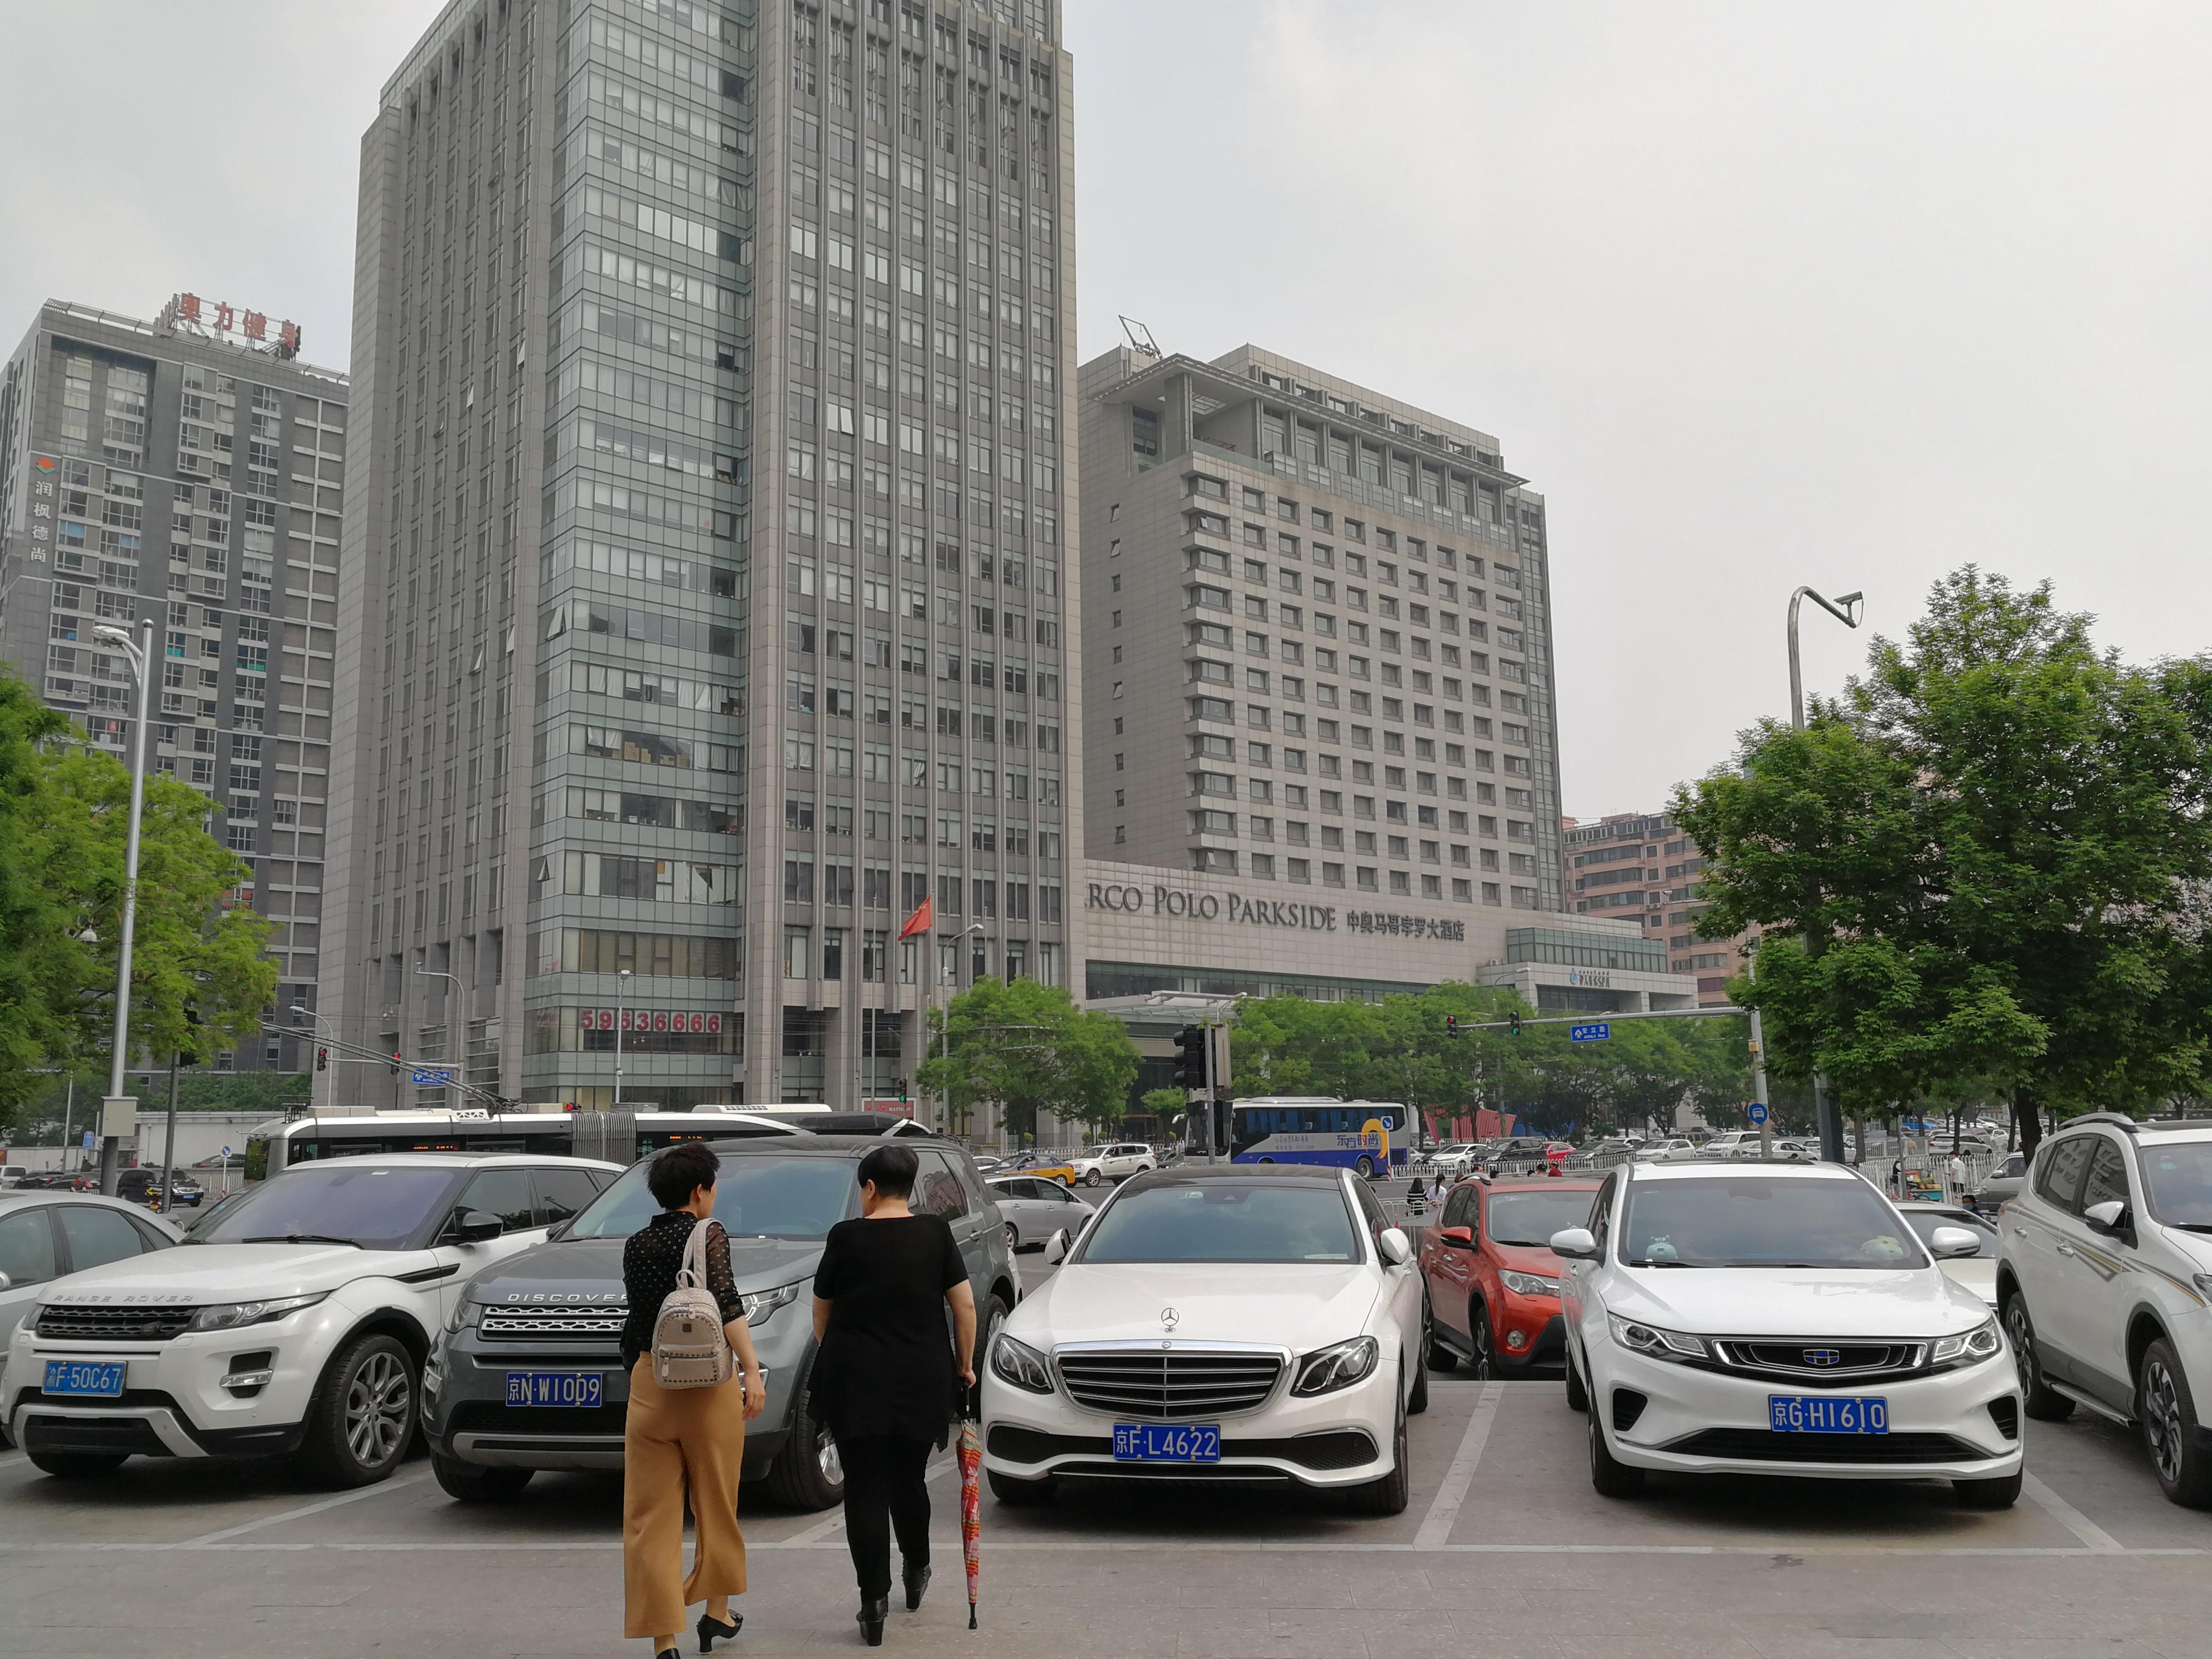 Marco Polo Parkside Beijing 2019 𝗗𝗲𝗮𝗹𝘀 𝗣𝗿𝗼𝗺𝗼𝘁𝗶𝗼𝗻𝘀